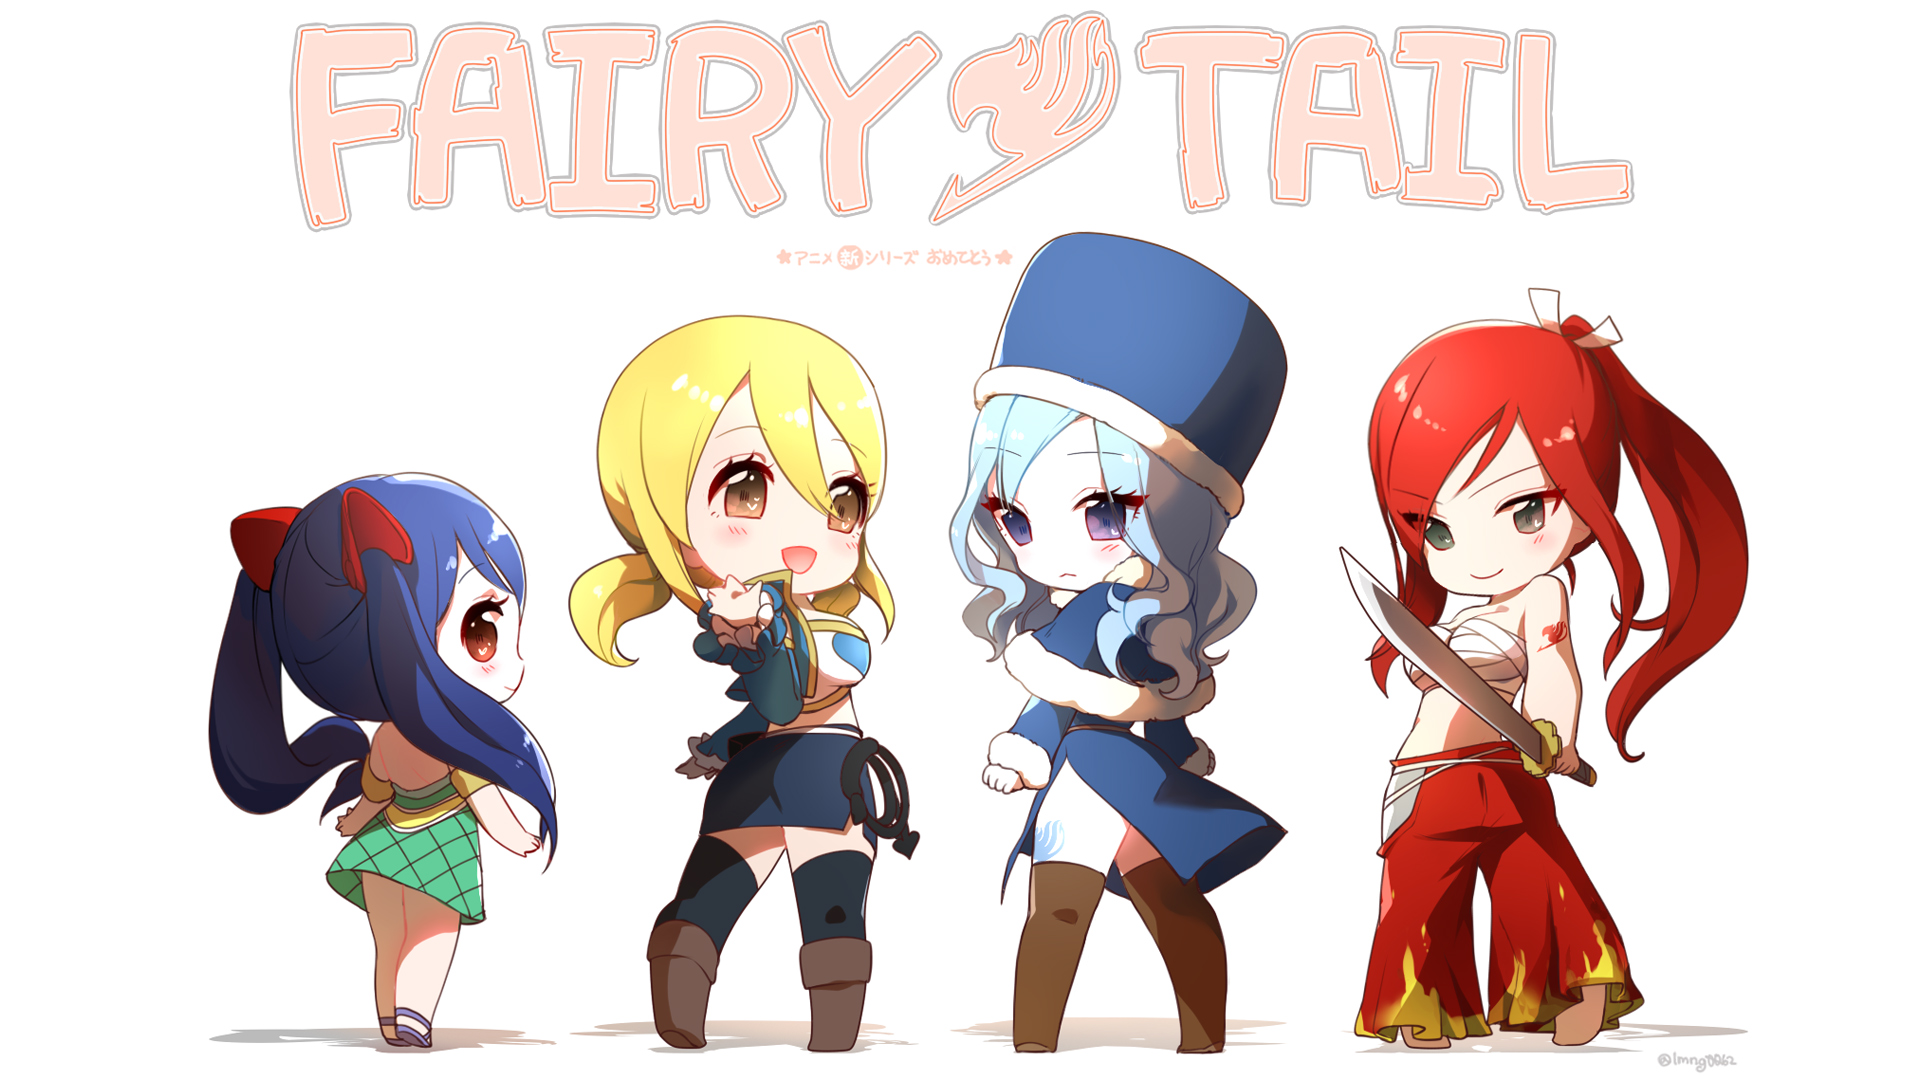 fairy tail chibi girls wallpaper hd